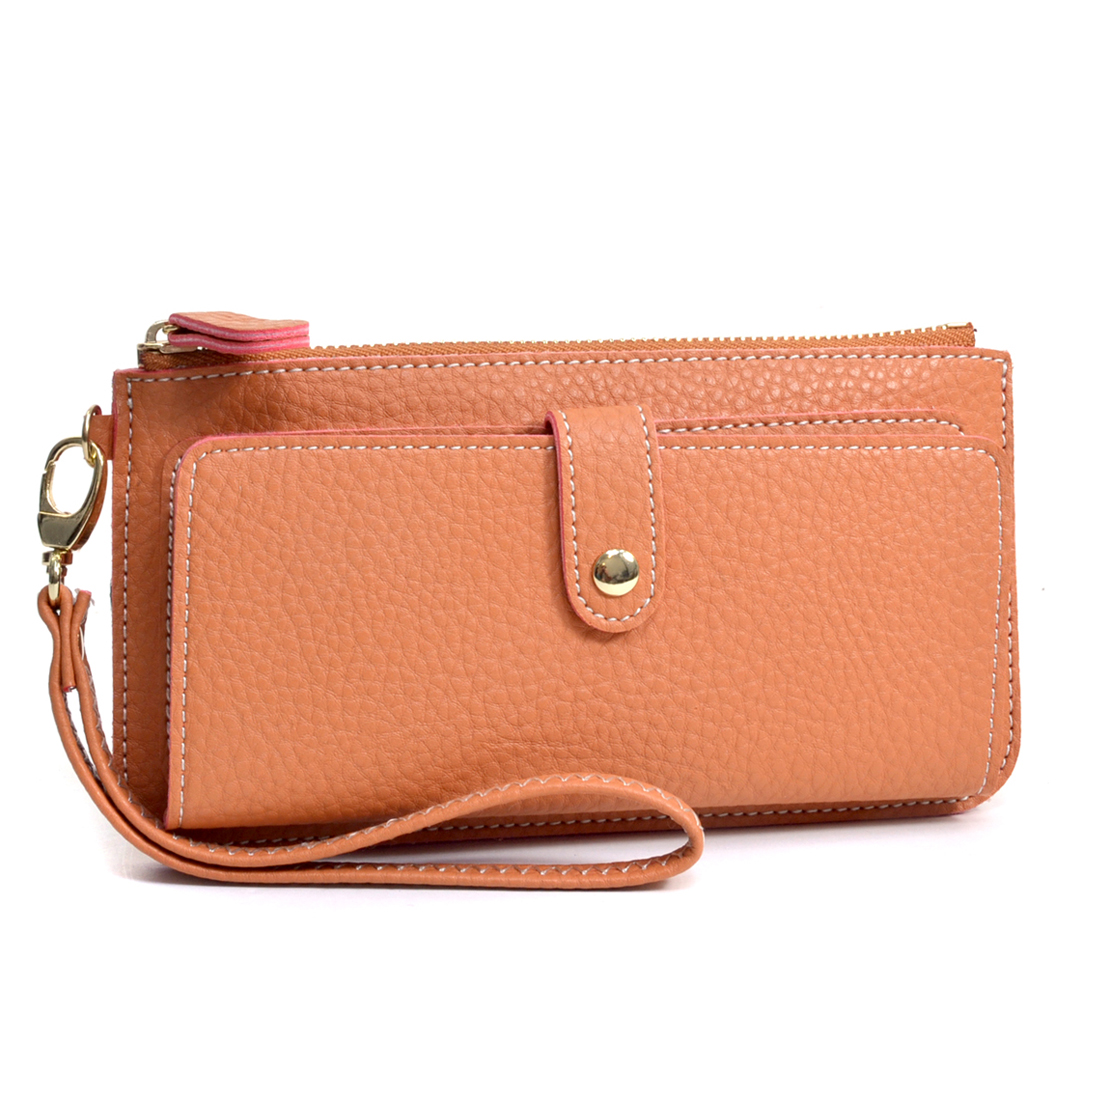 Faux Leather Clutch Wristlet with Decorative Stitching